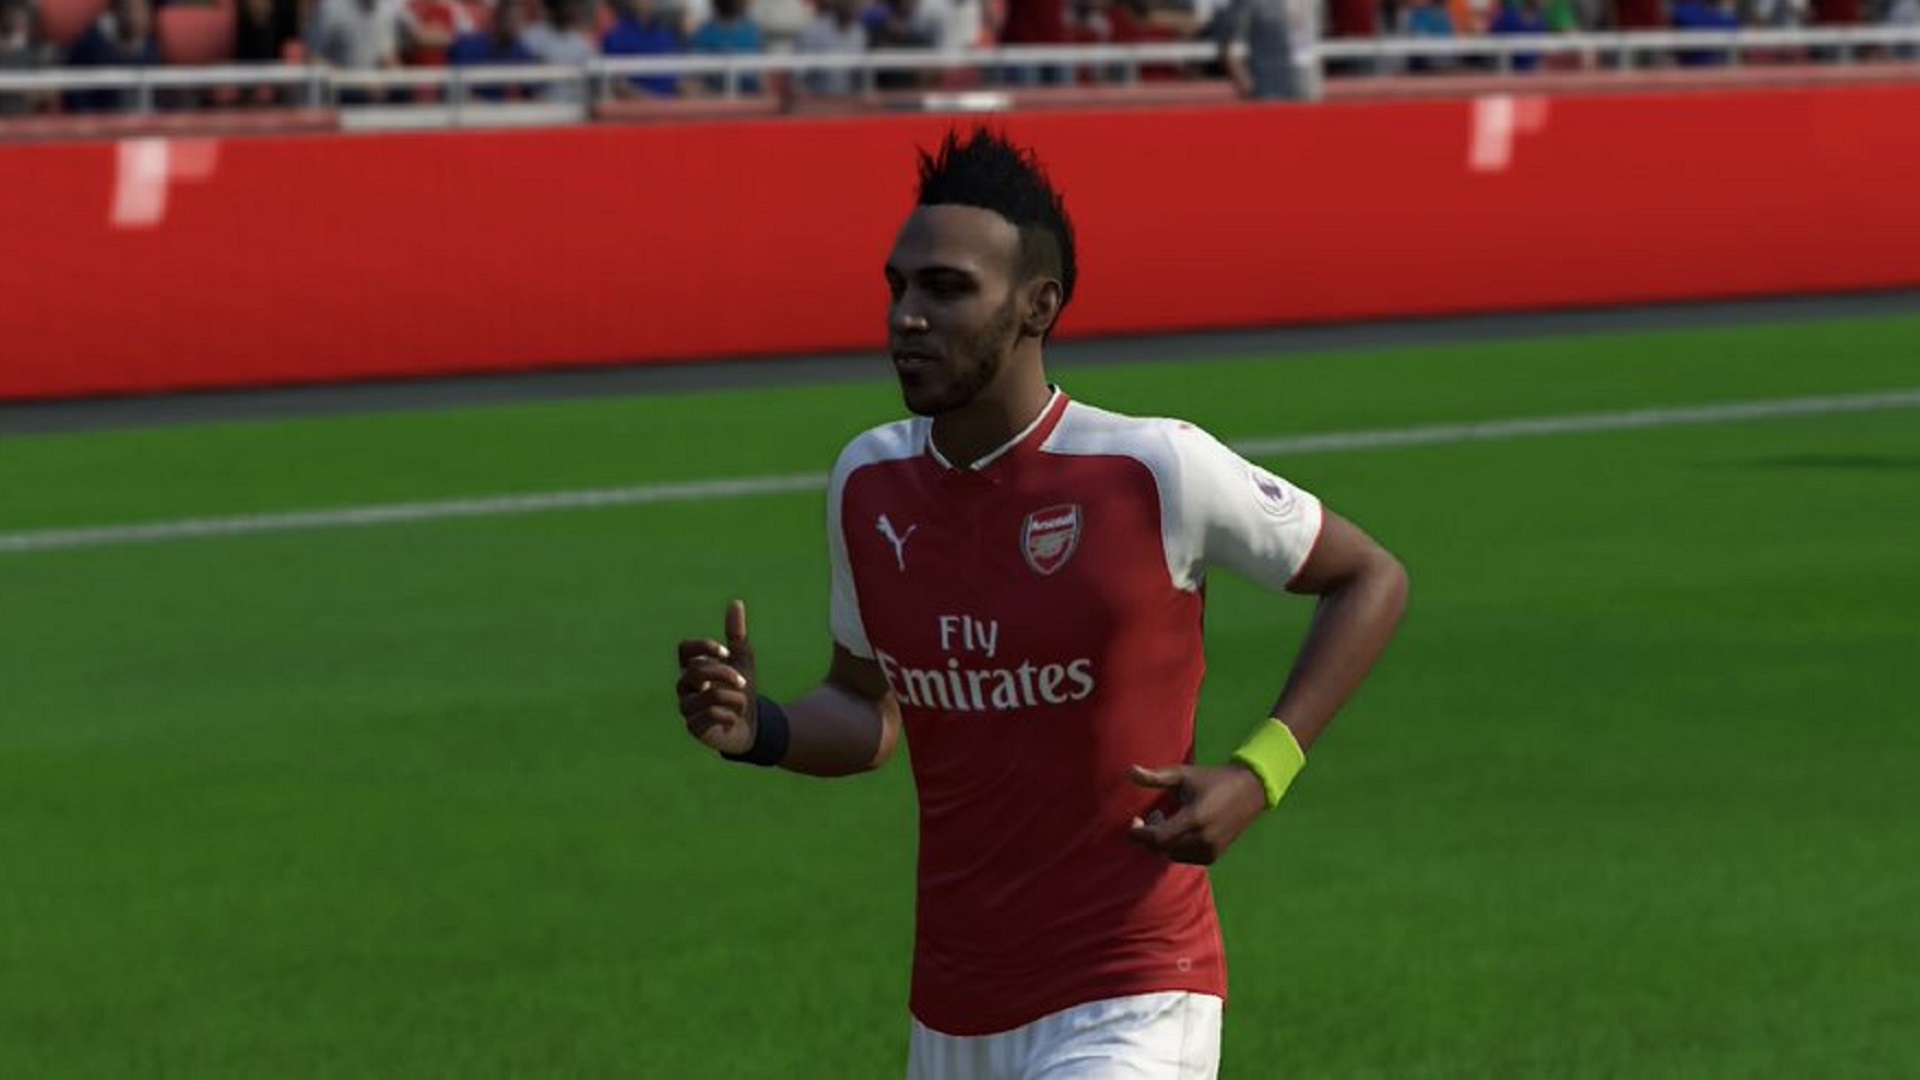 Fifa 18 welbeck potential fifa club world cup 2018 final results